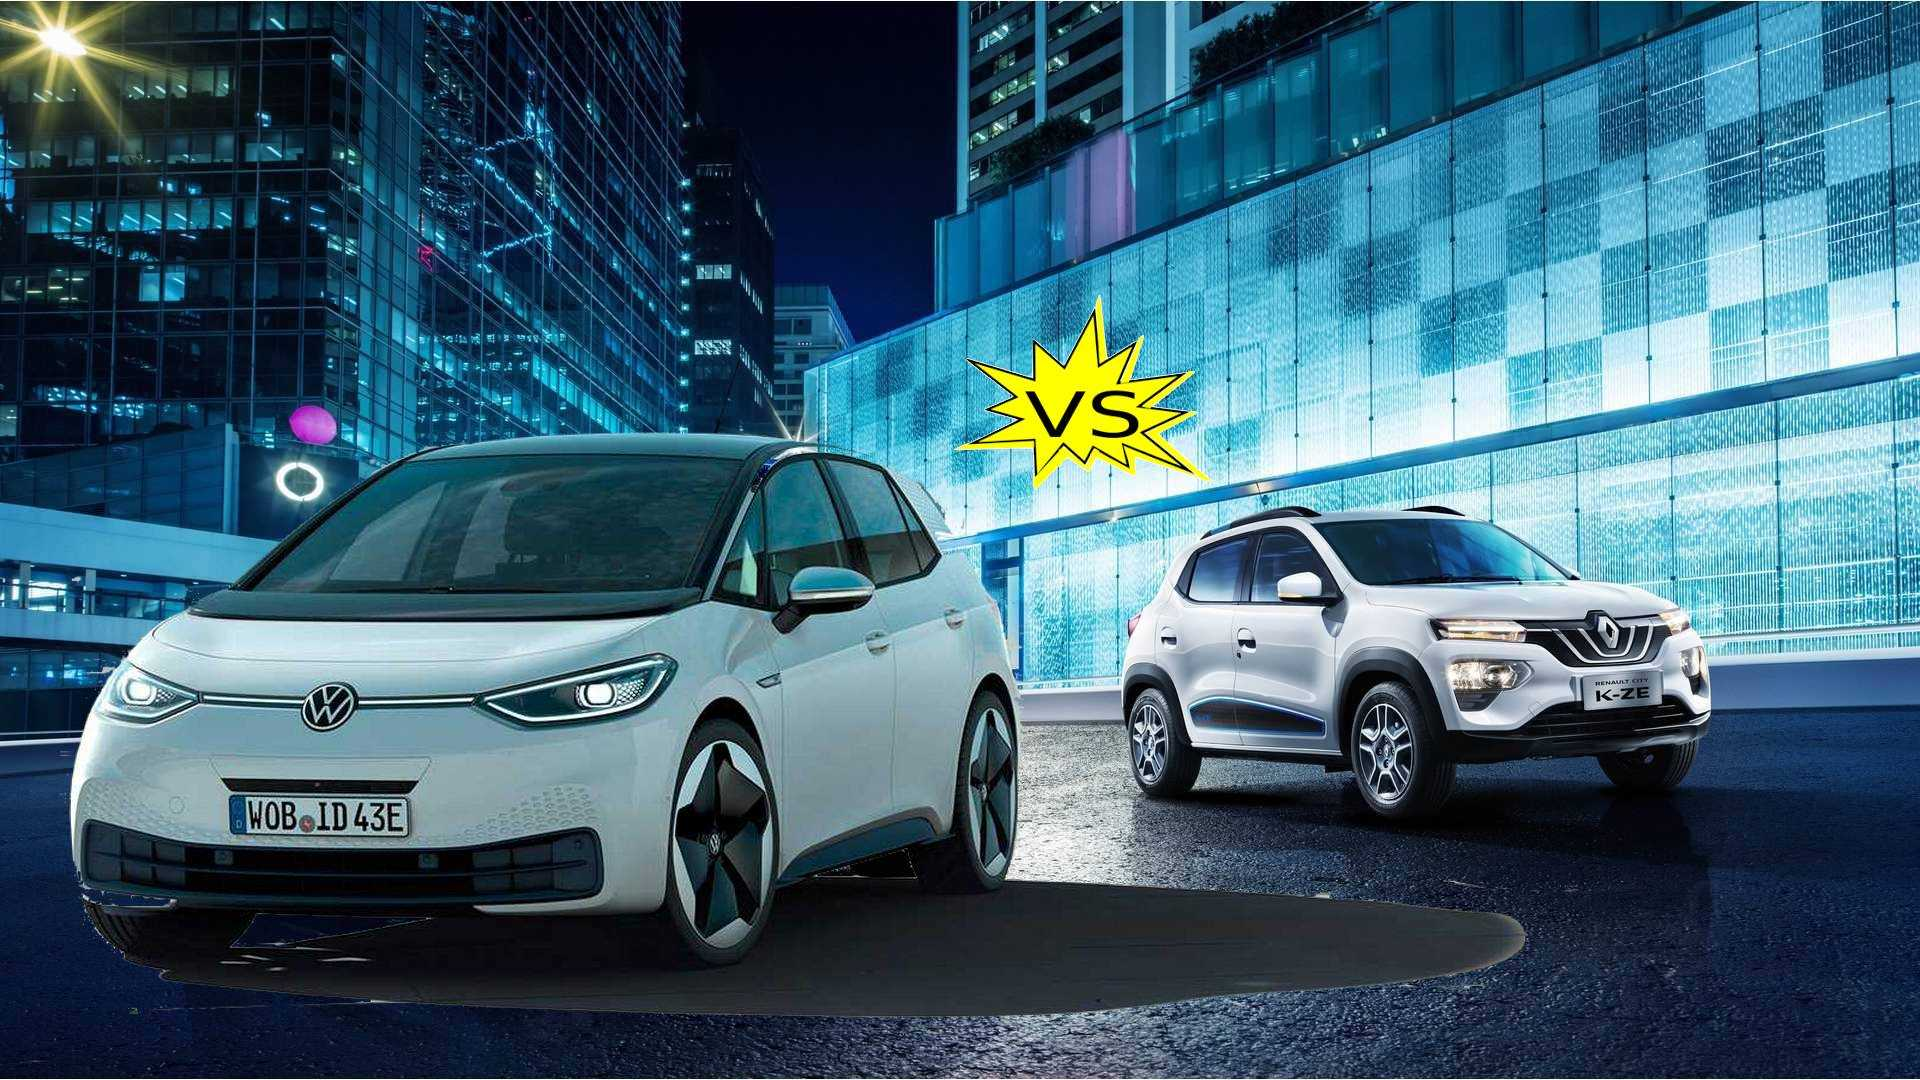 Which Is The True Electric Car For All: The VW ID.3 Or Renault K-ZE?